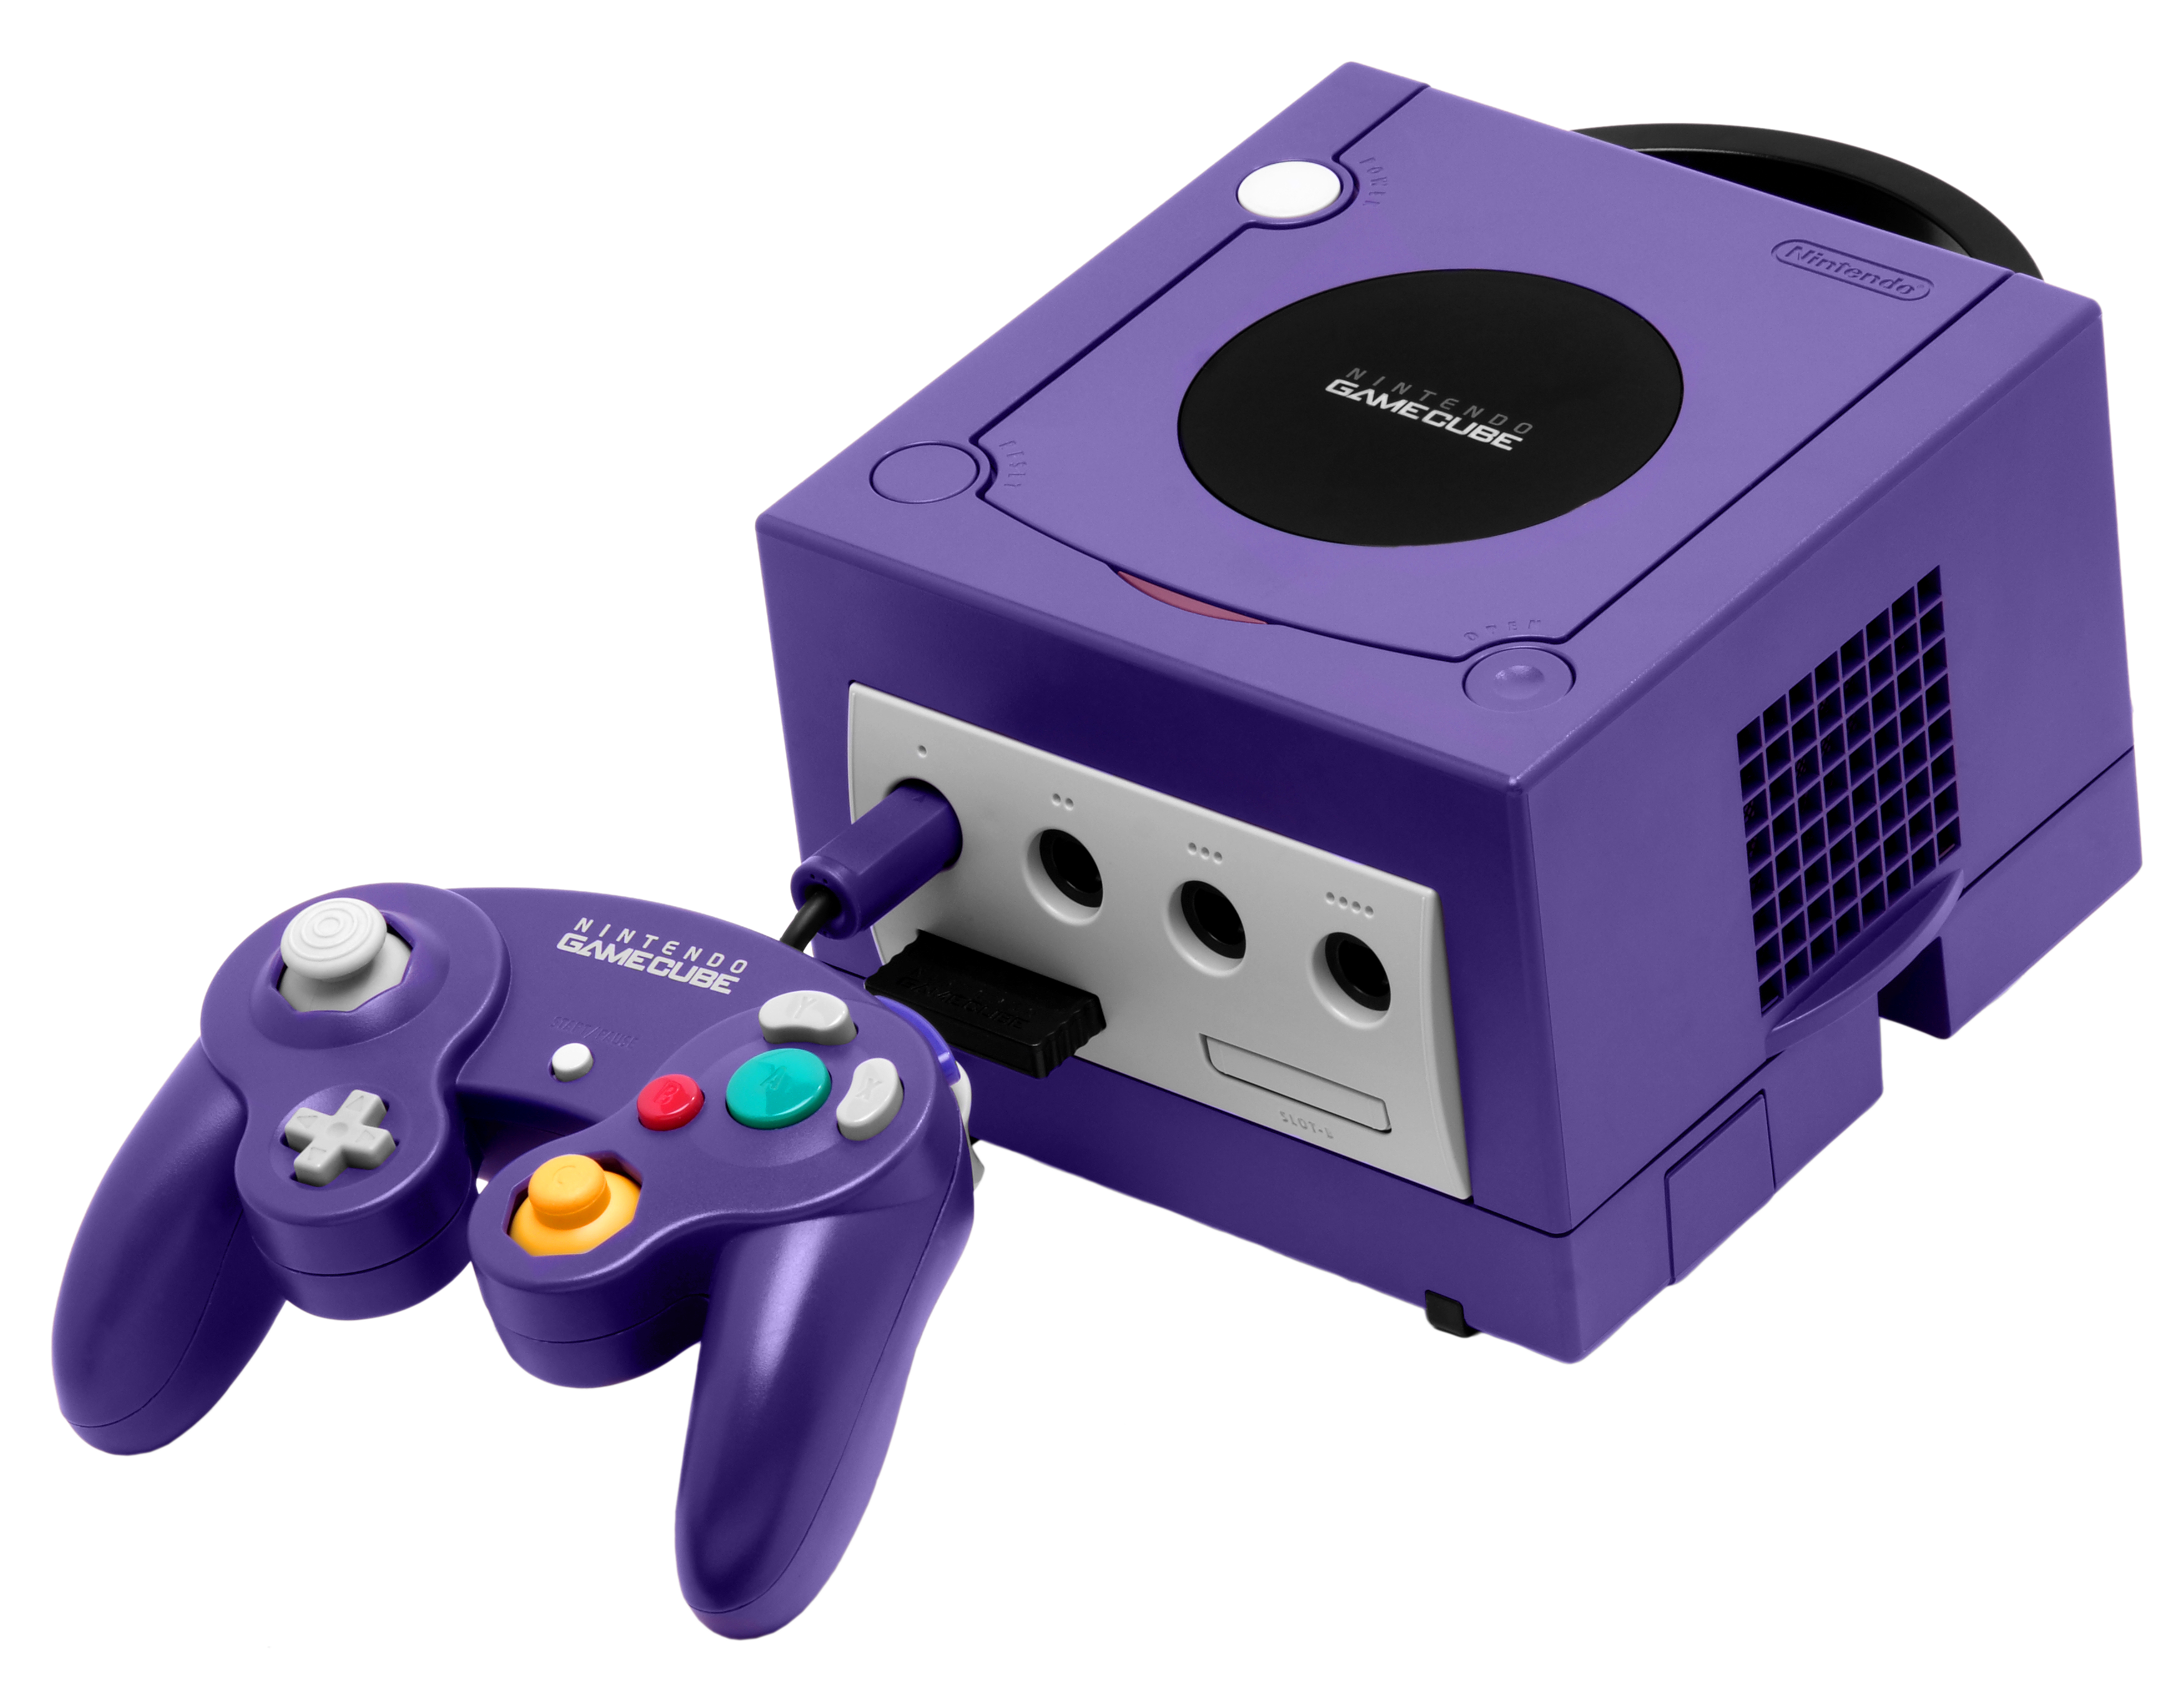 Frube: frustration gamecube